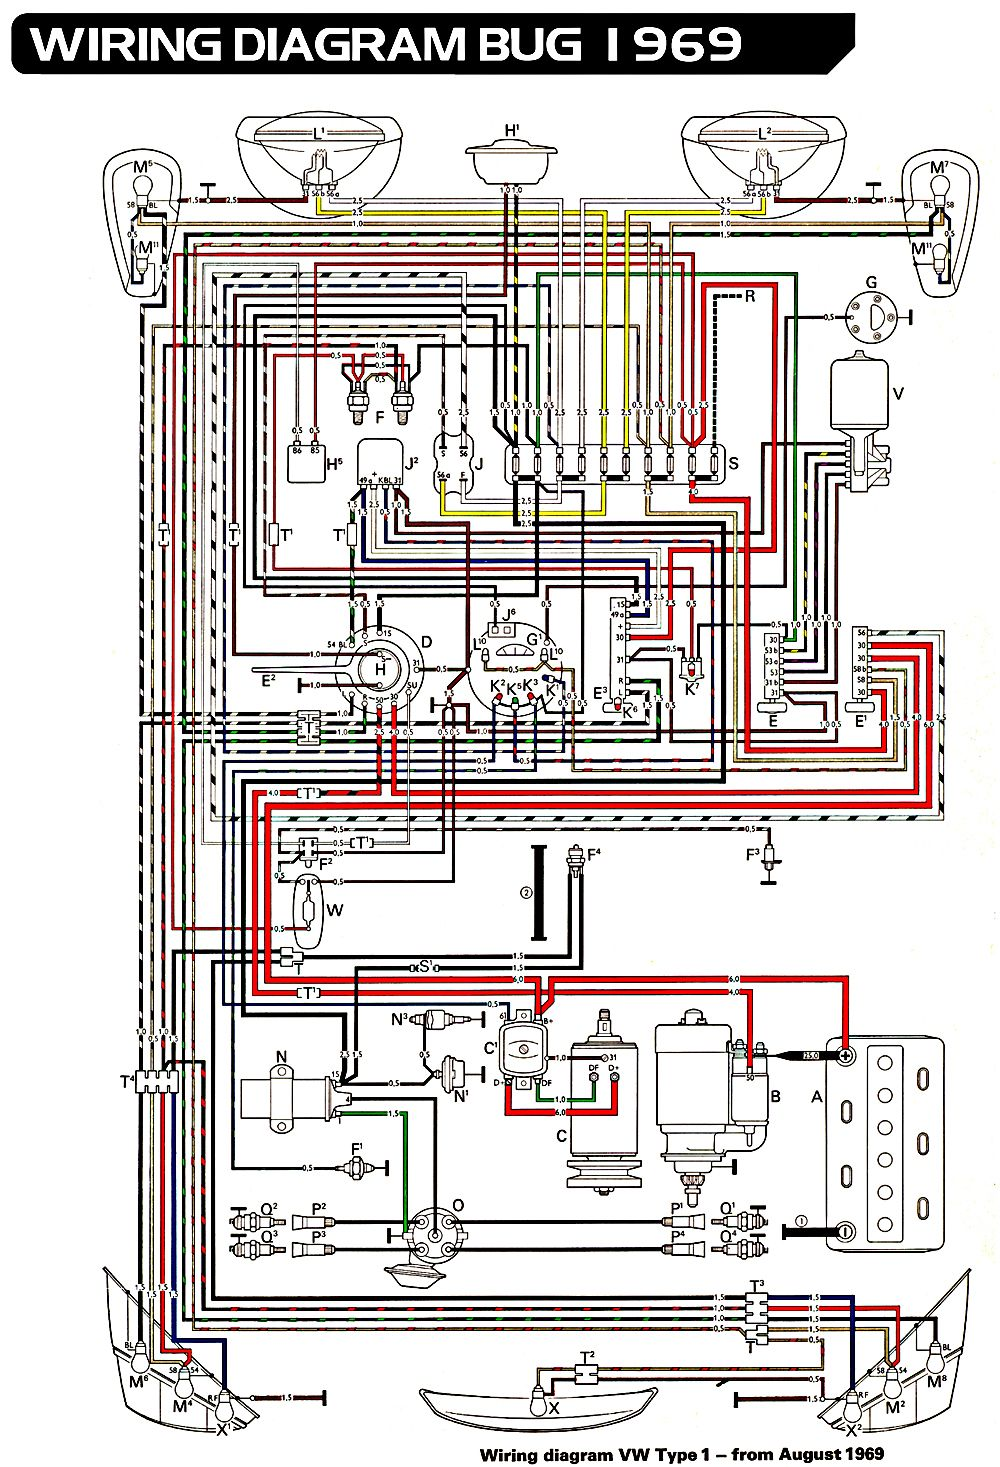 Mg Midget Wiring Diagram on mg midget repair manual, mg midget suspension, mg midget oil pump, mg midget firing order, mg midget heater, mg td wiring diagram, mg midget forum, mg midget turn signals, mg midget dash layout, mg midget radio, mg midget tachometer wiring, mg midget charging system, mg midget ignition, mg midget battery, mg midget transmission diagram, mg midget thermostat, 1976 mg midget electrical diagram, mg midget dimensions, mg midget air cleaner, mg midget oil filter,